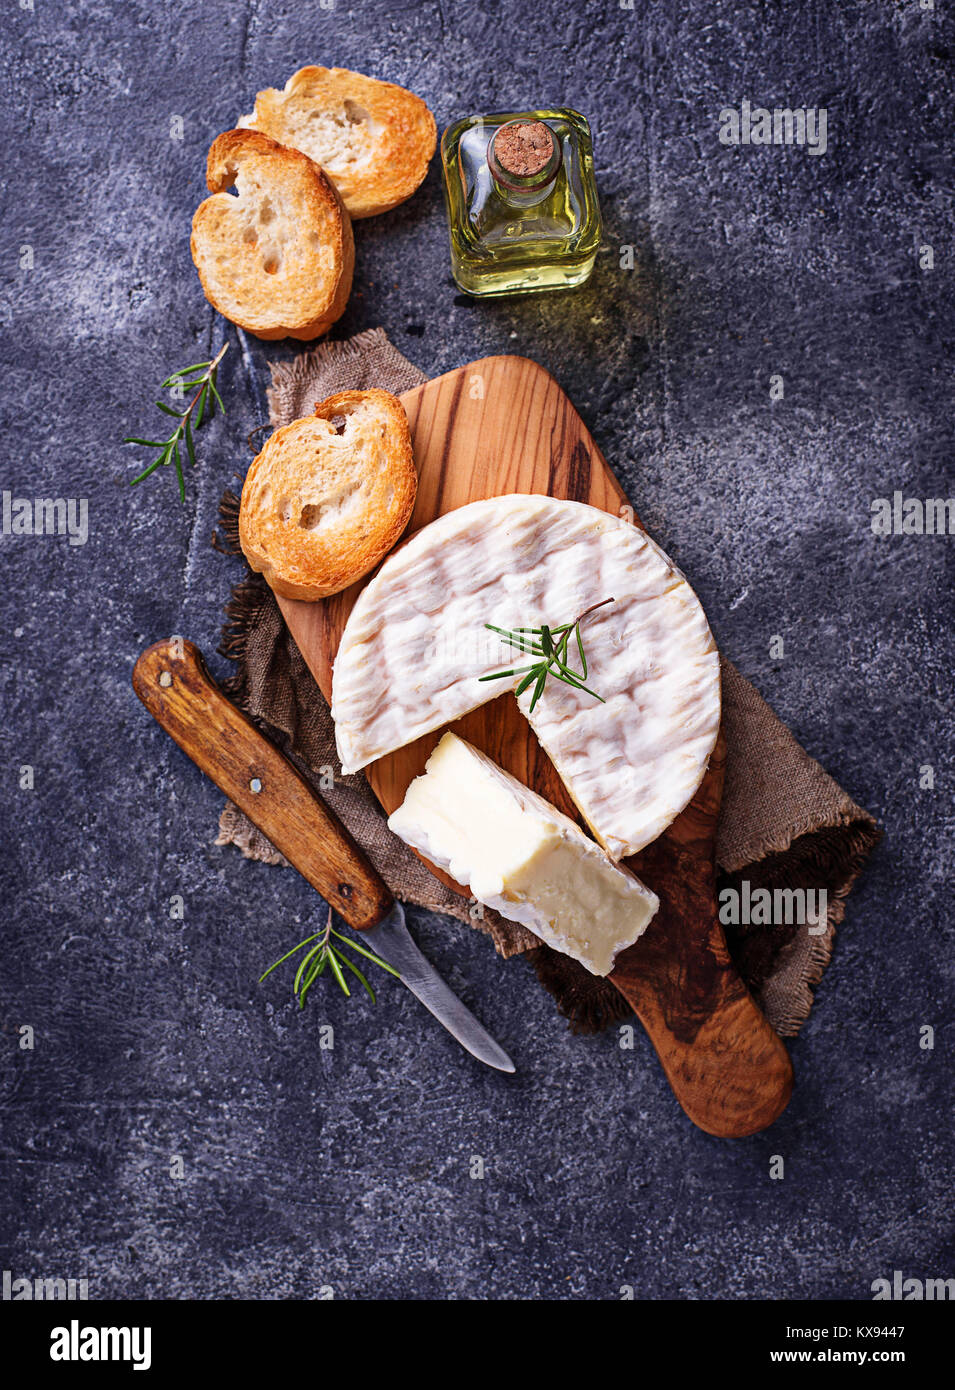 Camembert cheese with rosemary on wooden board - Stock Image